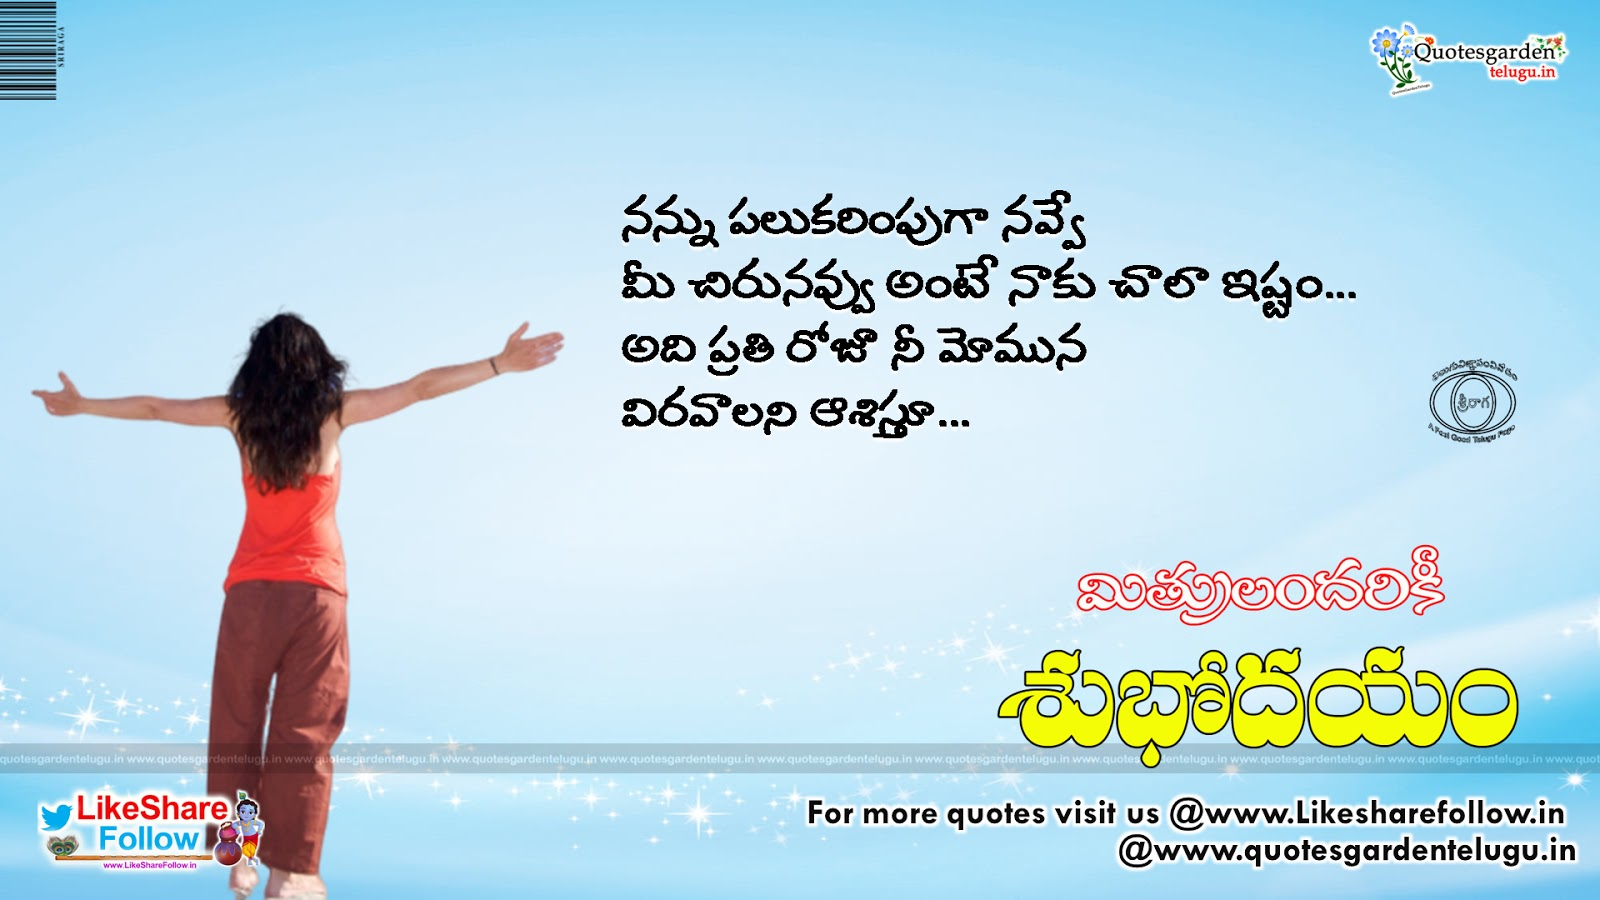 Good morning quotes in telugu latest for fb friends